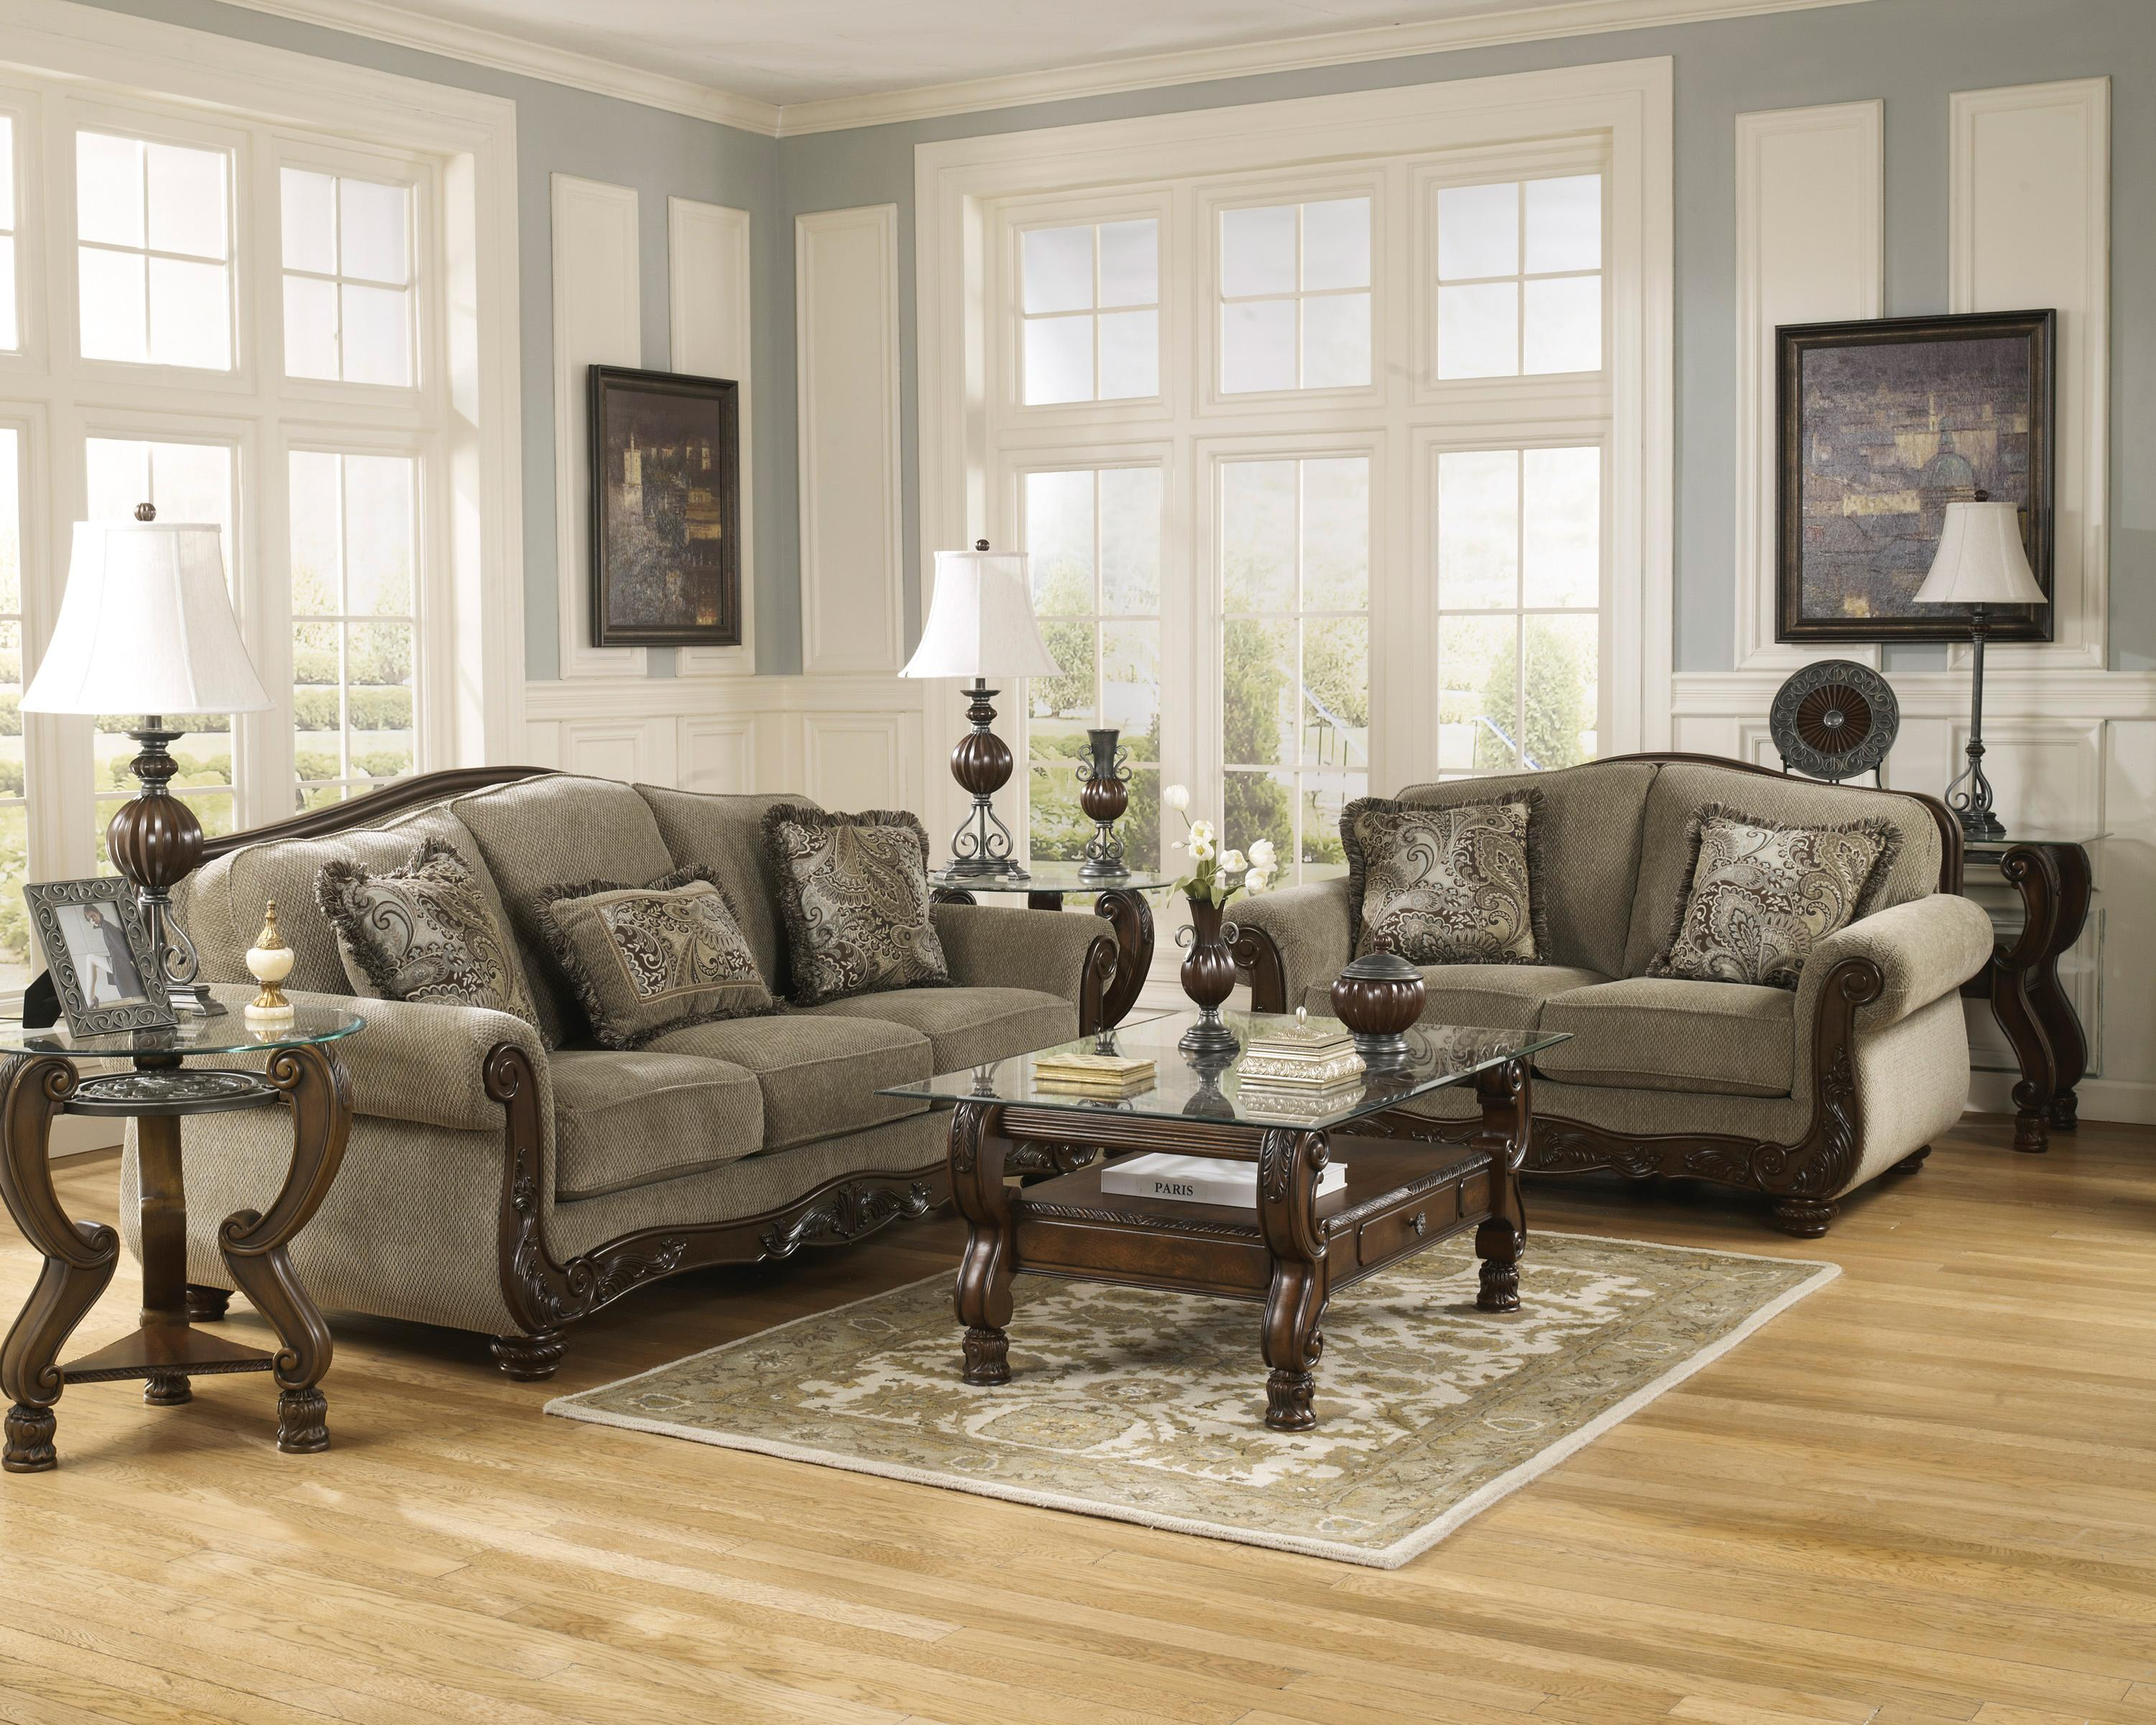 Signature Design by Ashley Martinsburg - Meadow Stationary Living Room Group - Item Number: 57300 Living Room Group 1